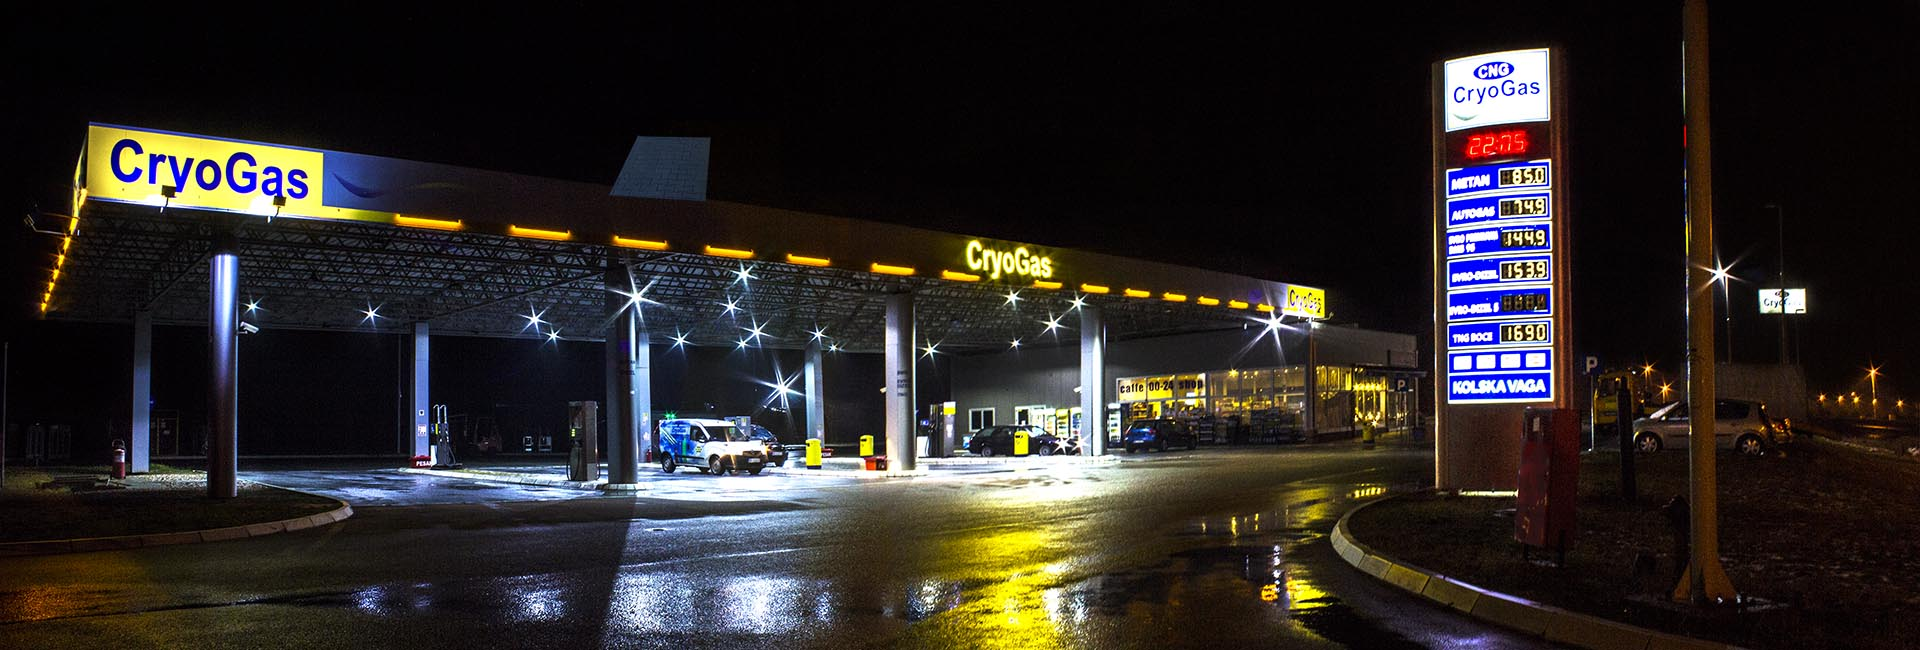 cng metan pumpe | CryoGas